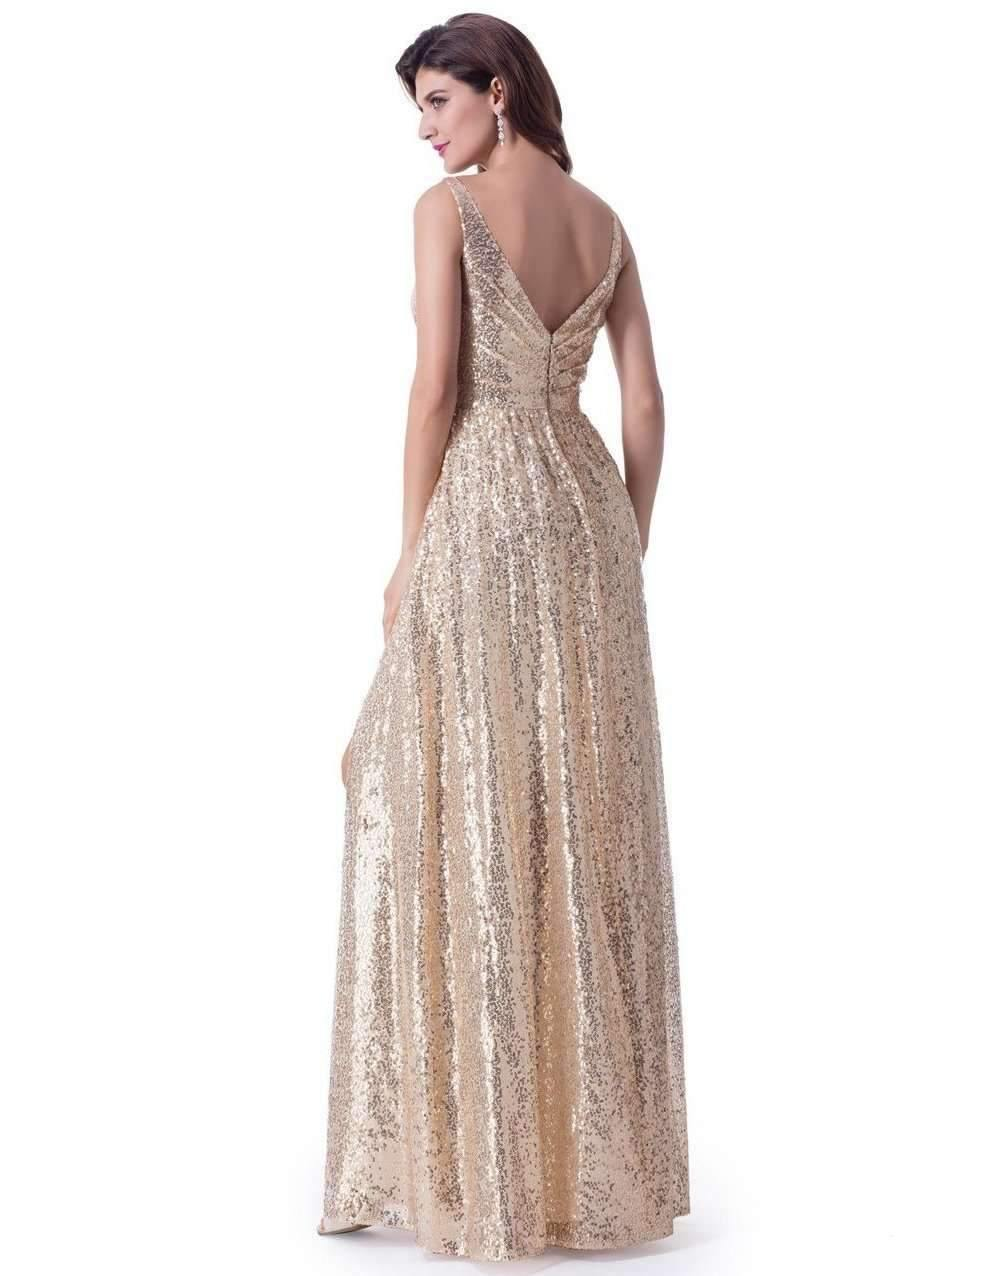 UK12 GOLD - SARA - SALE - Adore Bridal and Occasion Wear